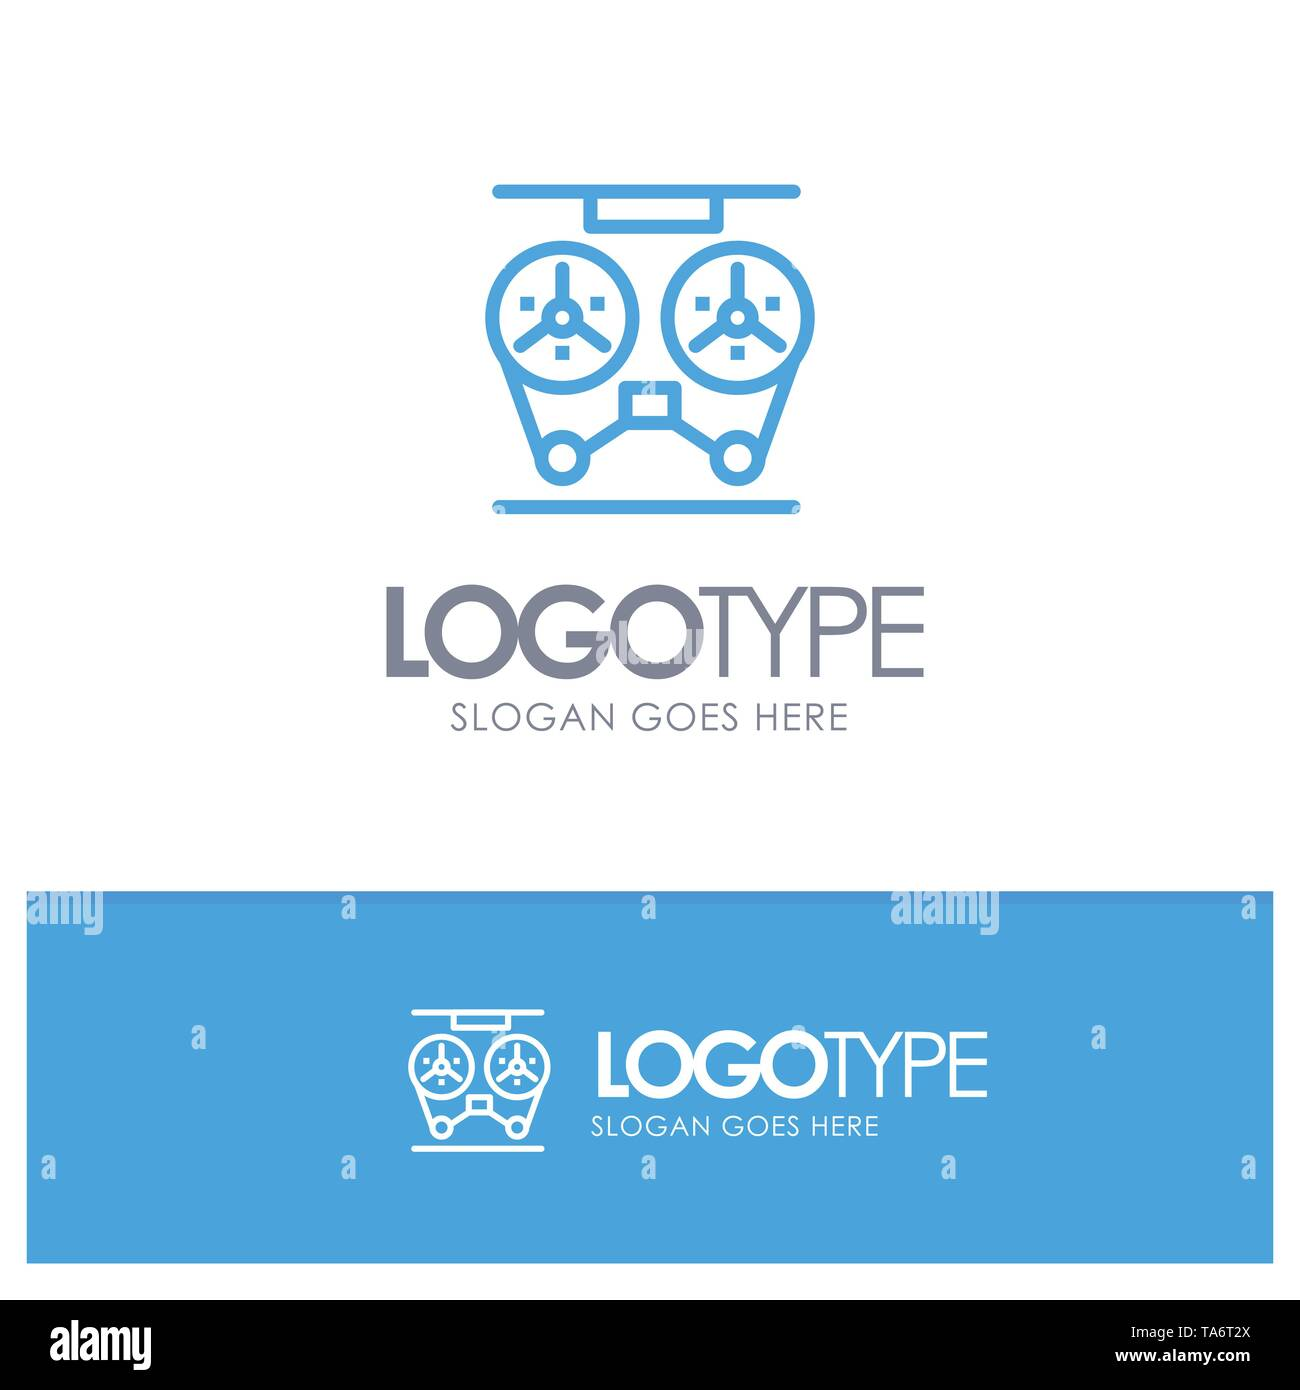 Audio, Player, Record, Recorder, Reel Blue outLine Logo with place for tagline - Stock Image